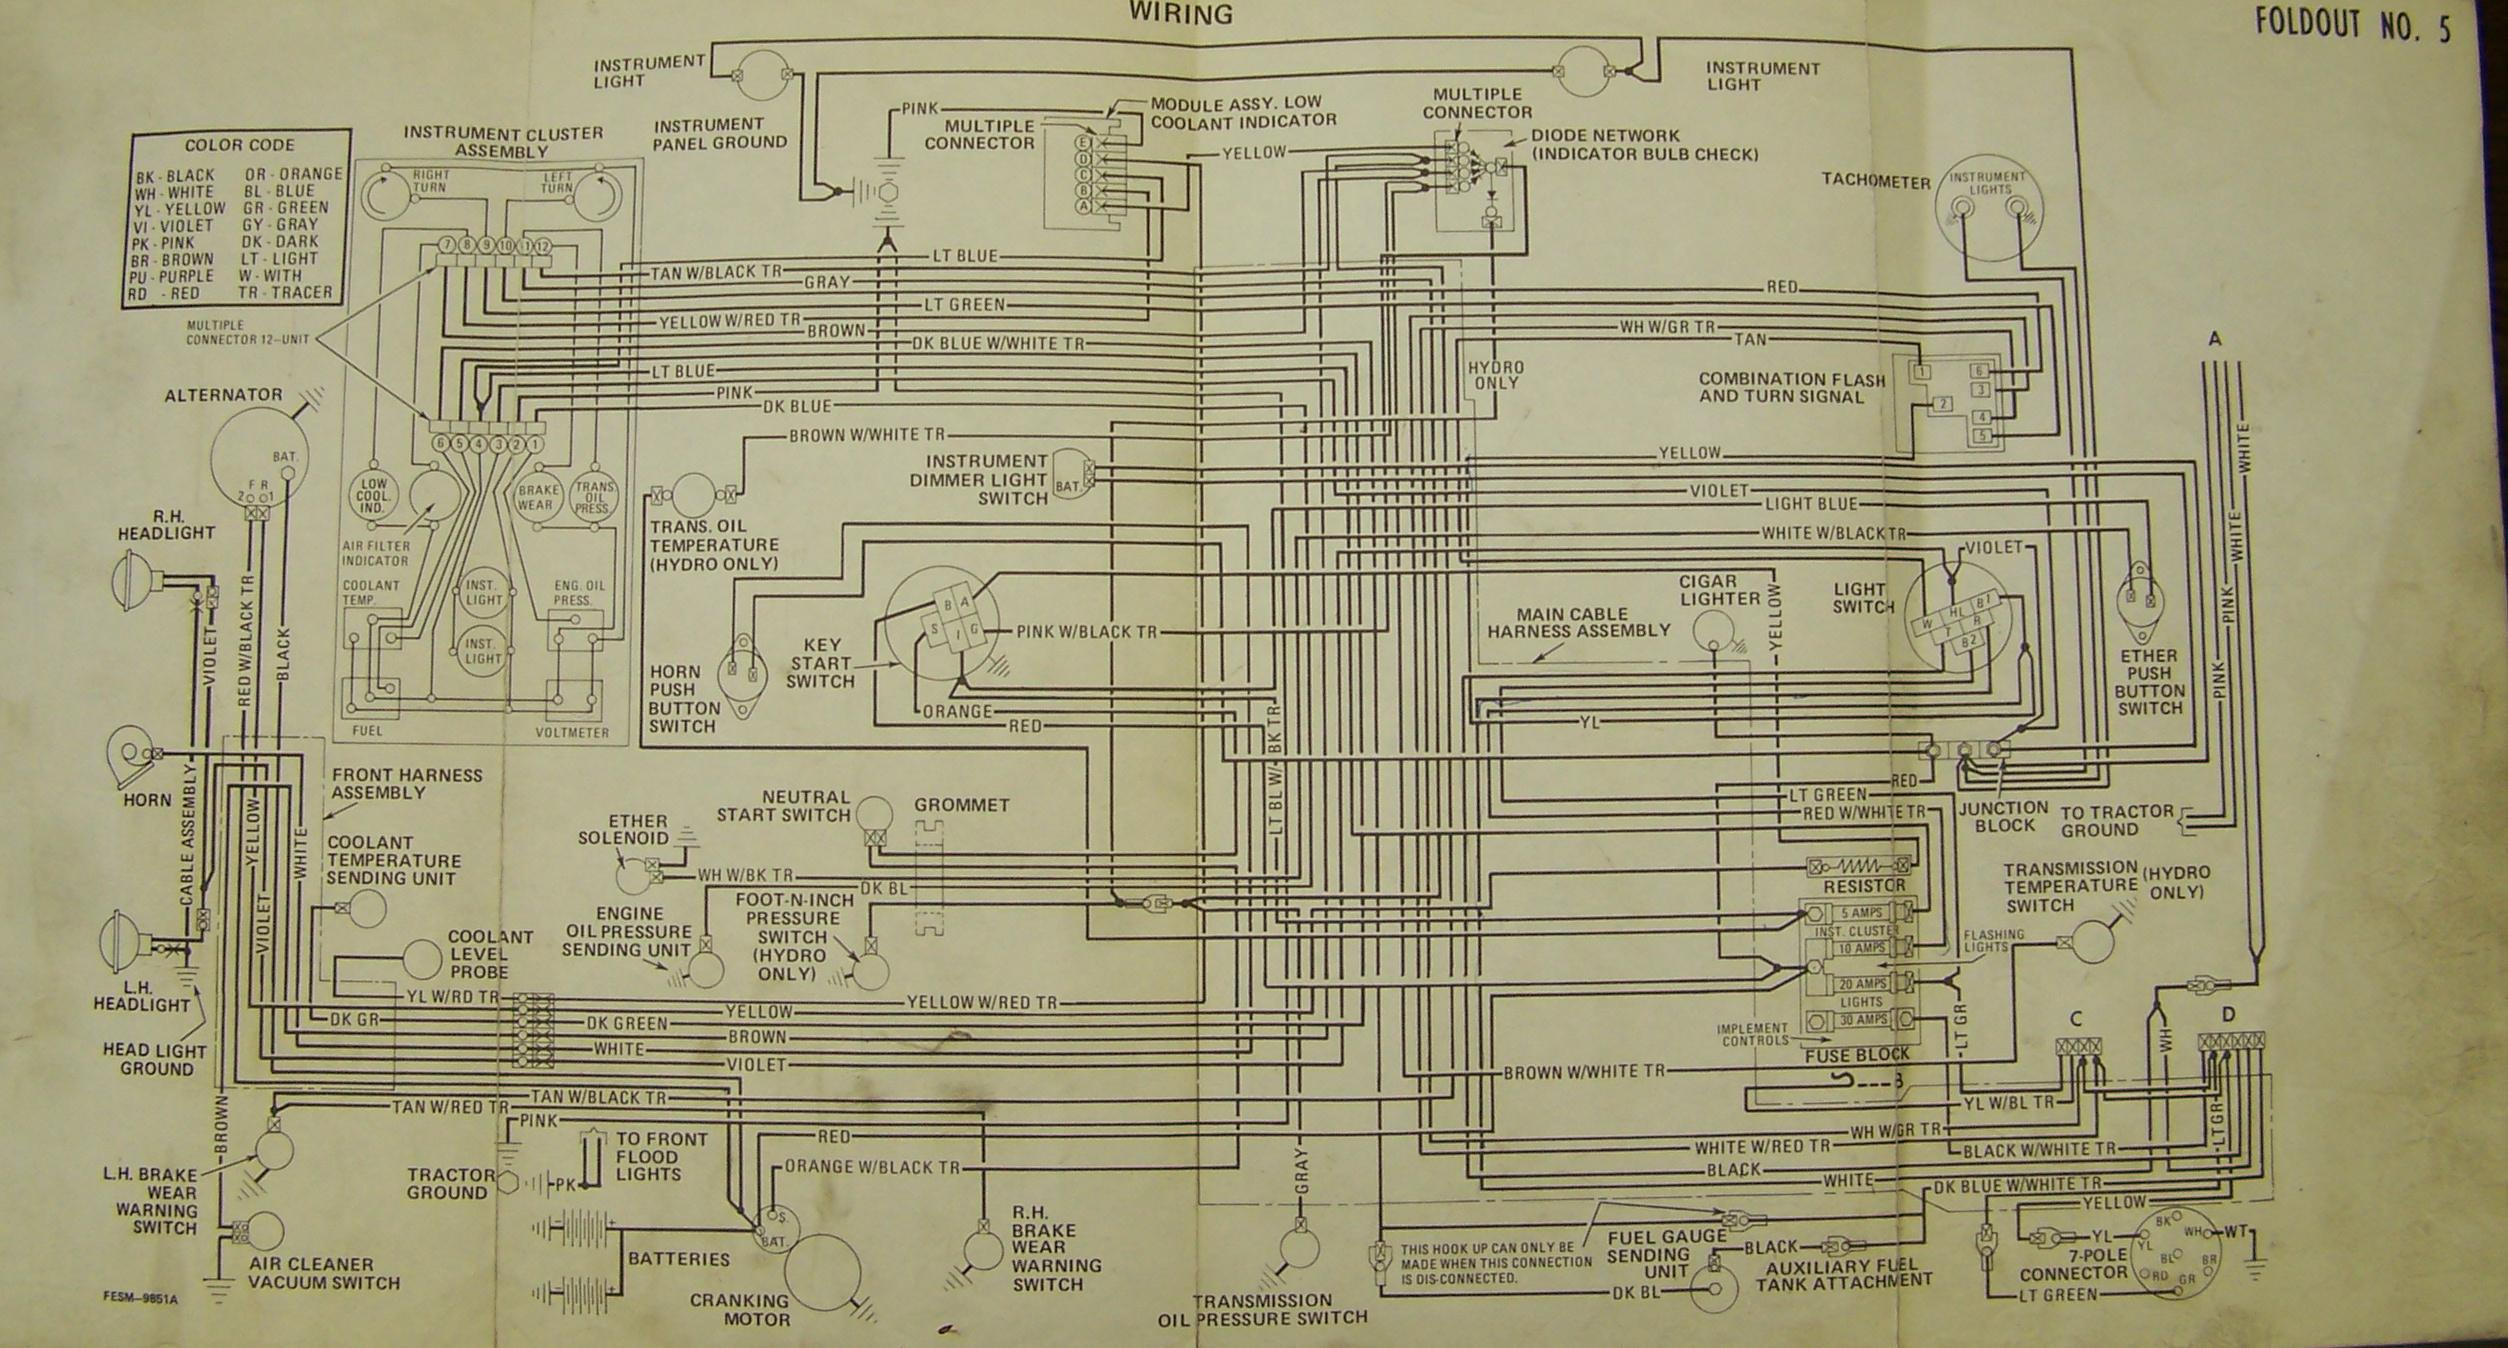 86series5 international motor diagrams ge electric motor wiring diagram 856 international wiring harness at honlapkeszites.co